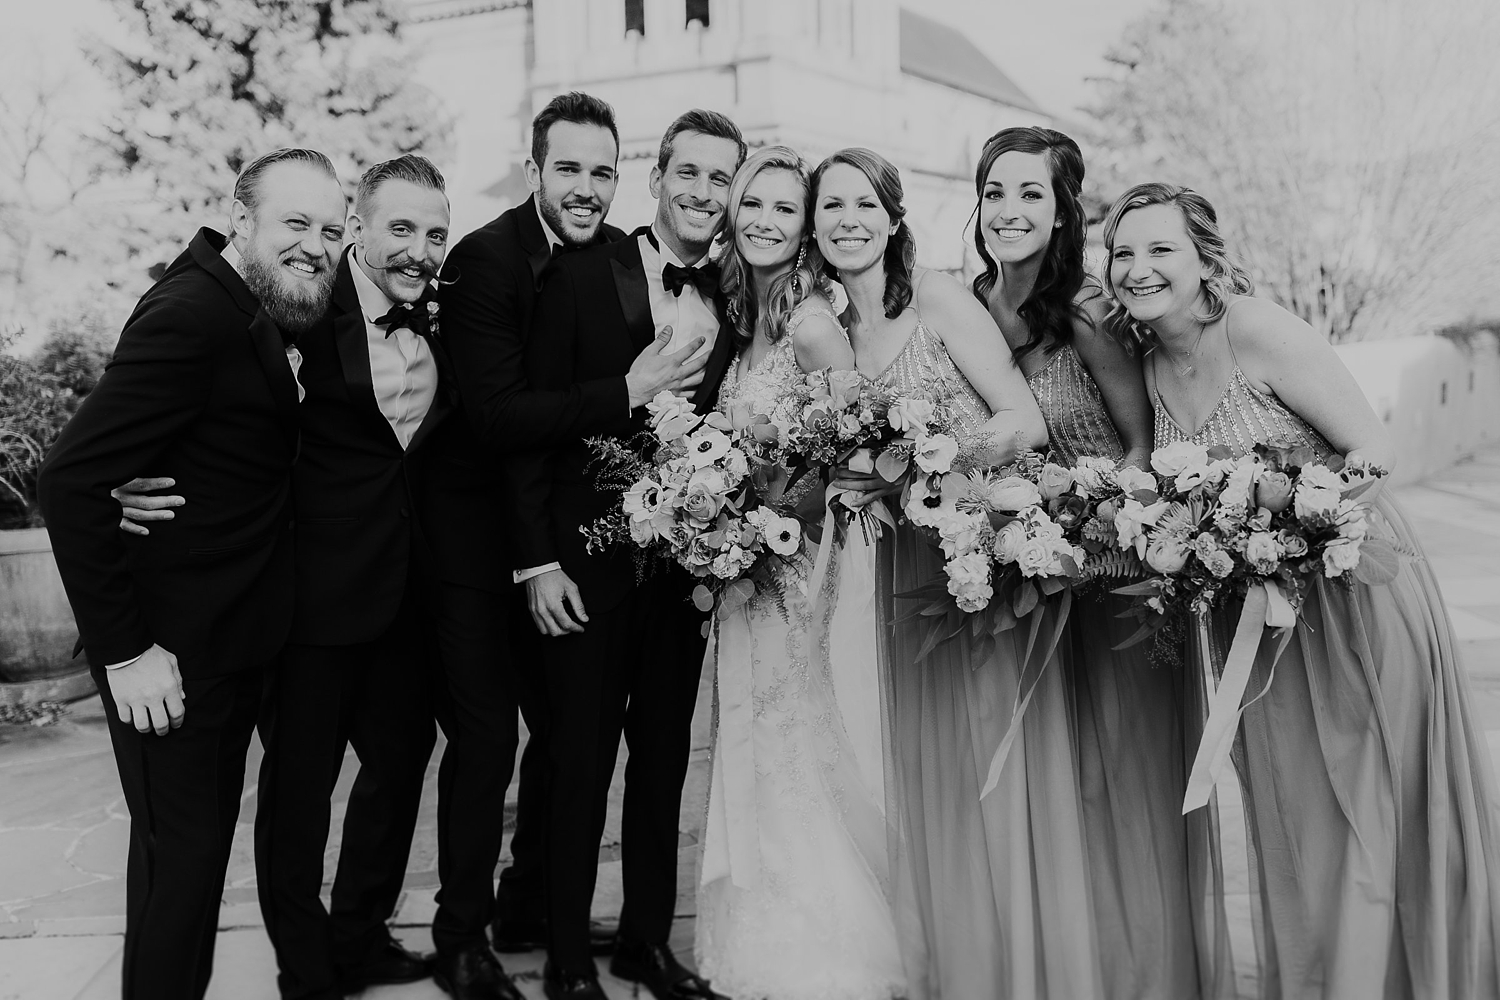 Alicia+lucia+photography+-+albuquerque+wedding+photographer+-+santa+fe+wedding+photography+-+new+mexico+wedding+photographer+-+la+fonda+wedding+-+la+fonda+winter+wedding_0055.jpg